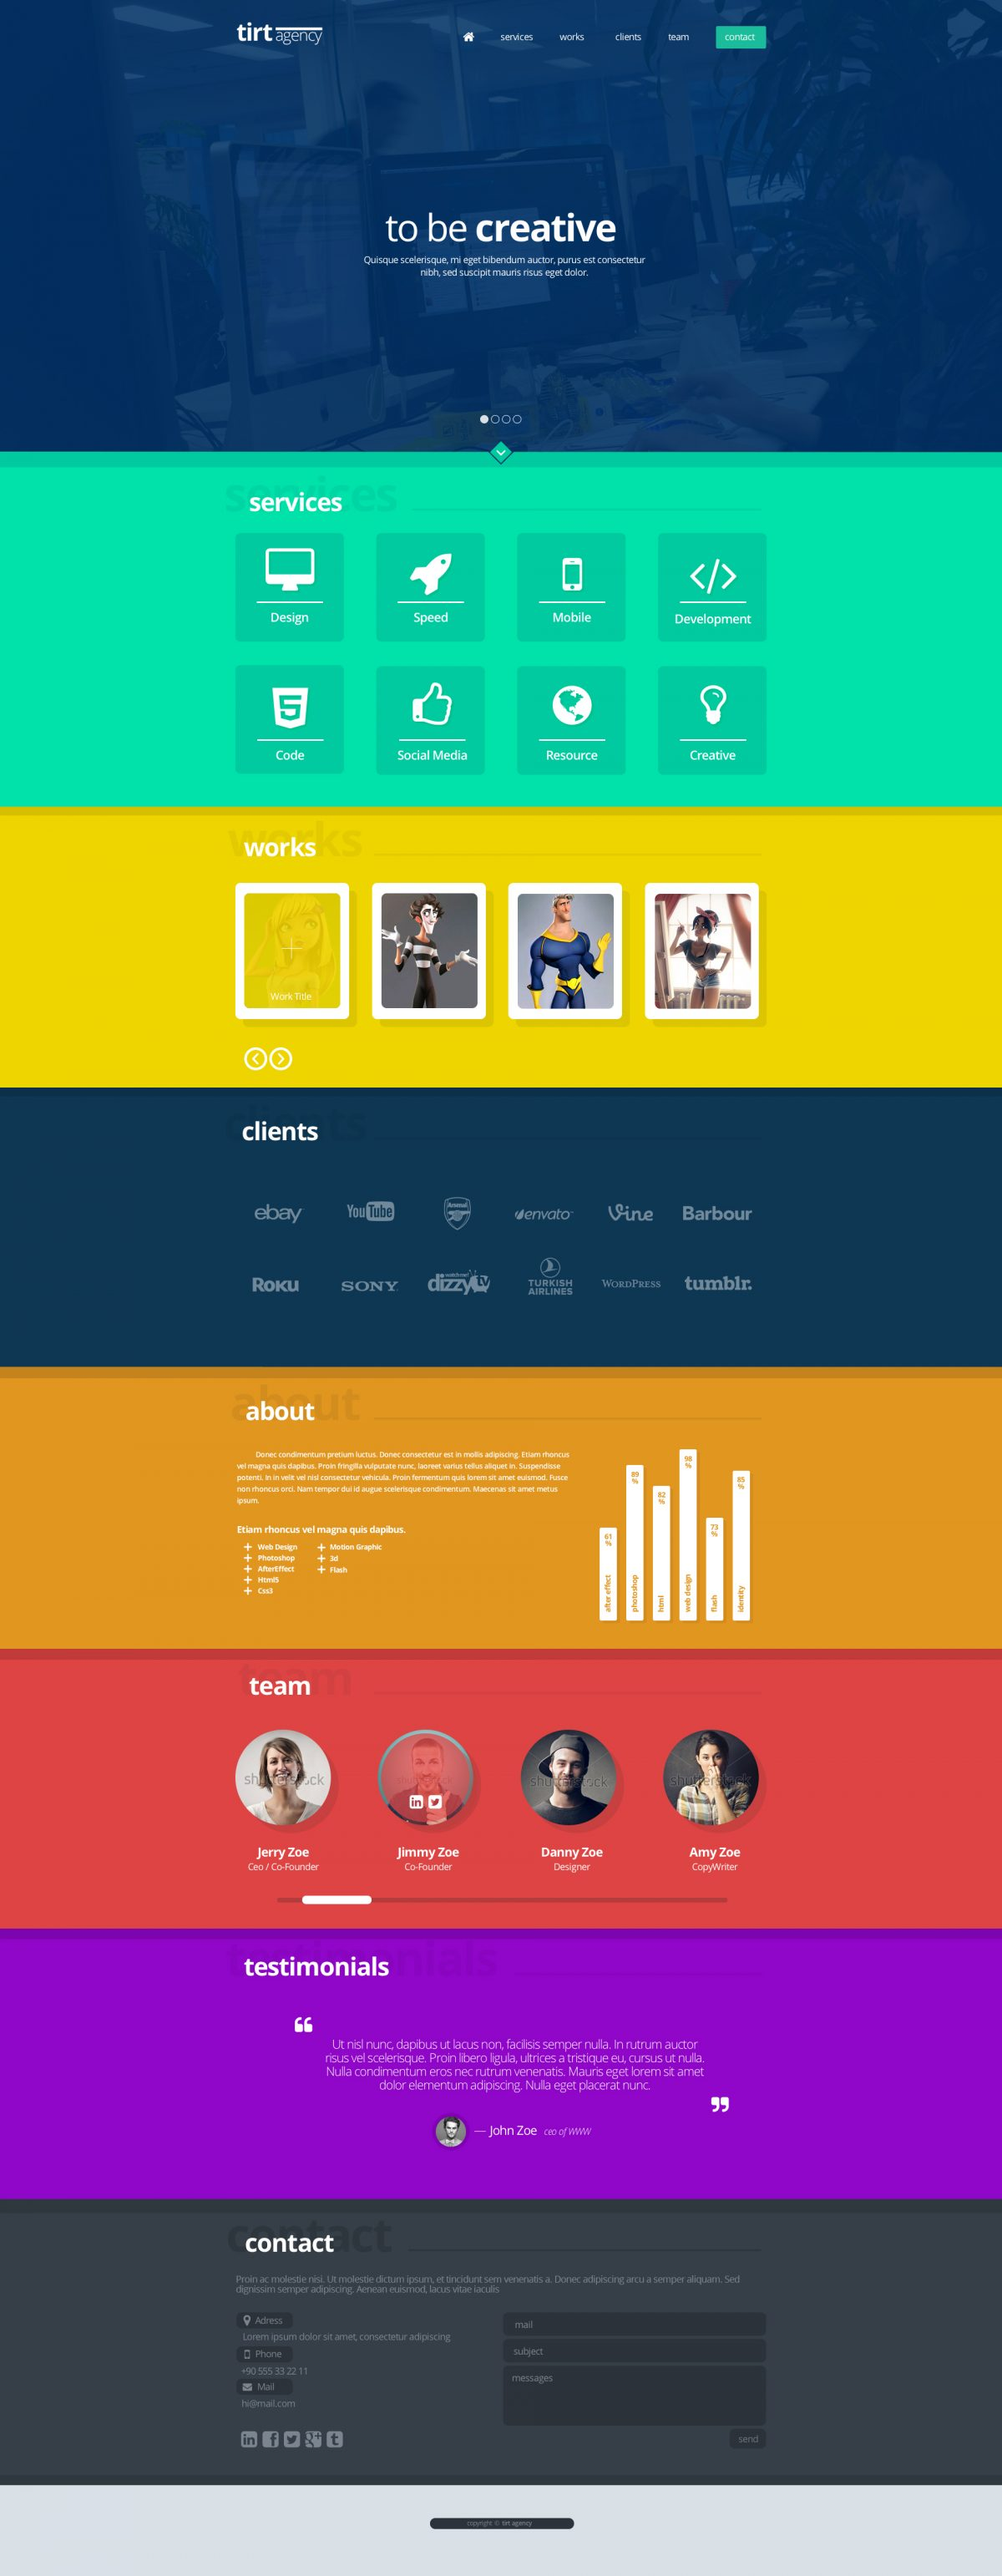 tirt-agency-onepage-psd-template-5